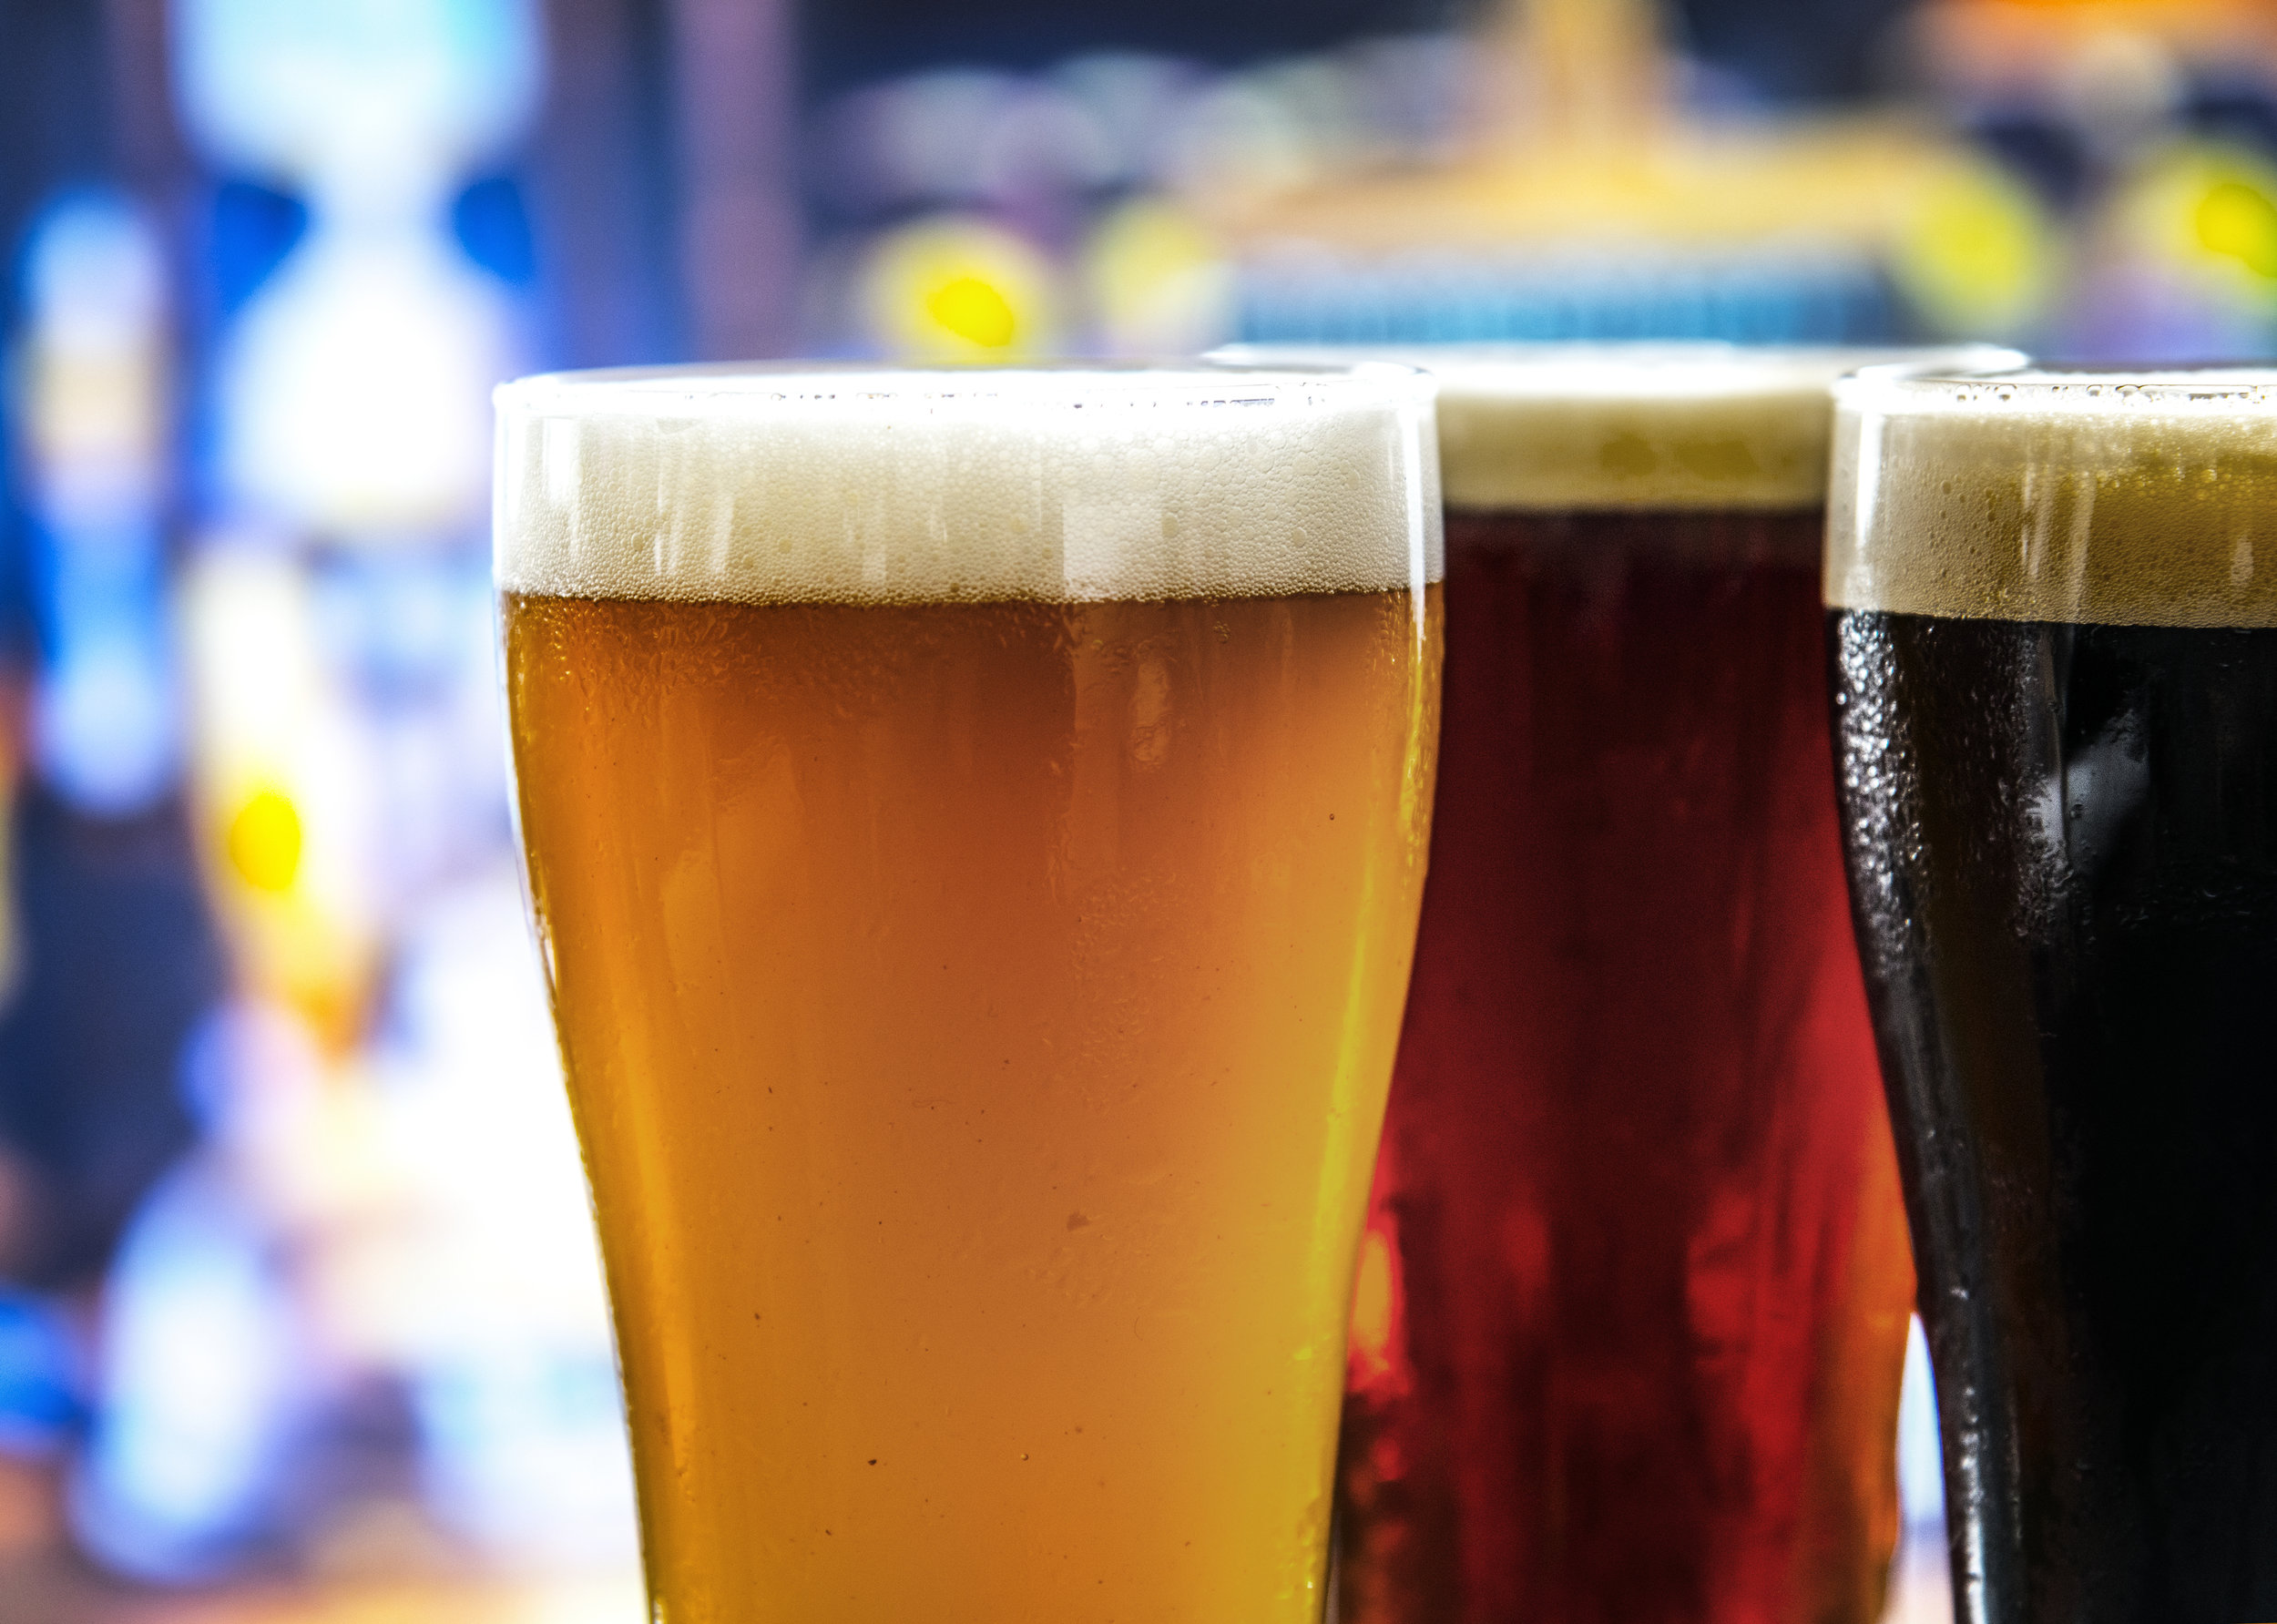 News Around Town: Seaboard Brewing, downtown Matthews craft beer brewer and wine bar, participated in Queen City Brew Festival this past weekend. Seaboard took just a little luster out of the Queen's crown by bringing the Best in Show award home to Matthews. -